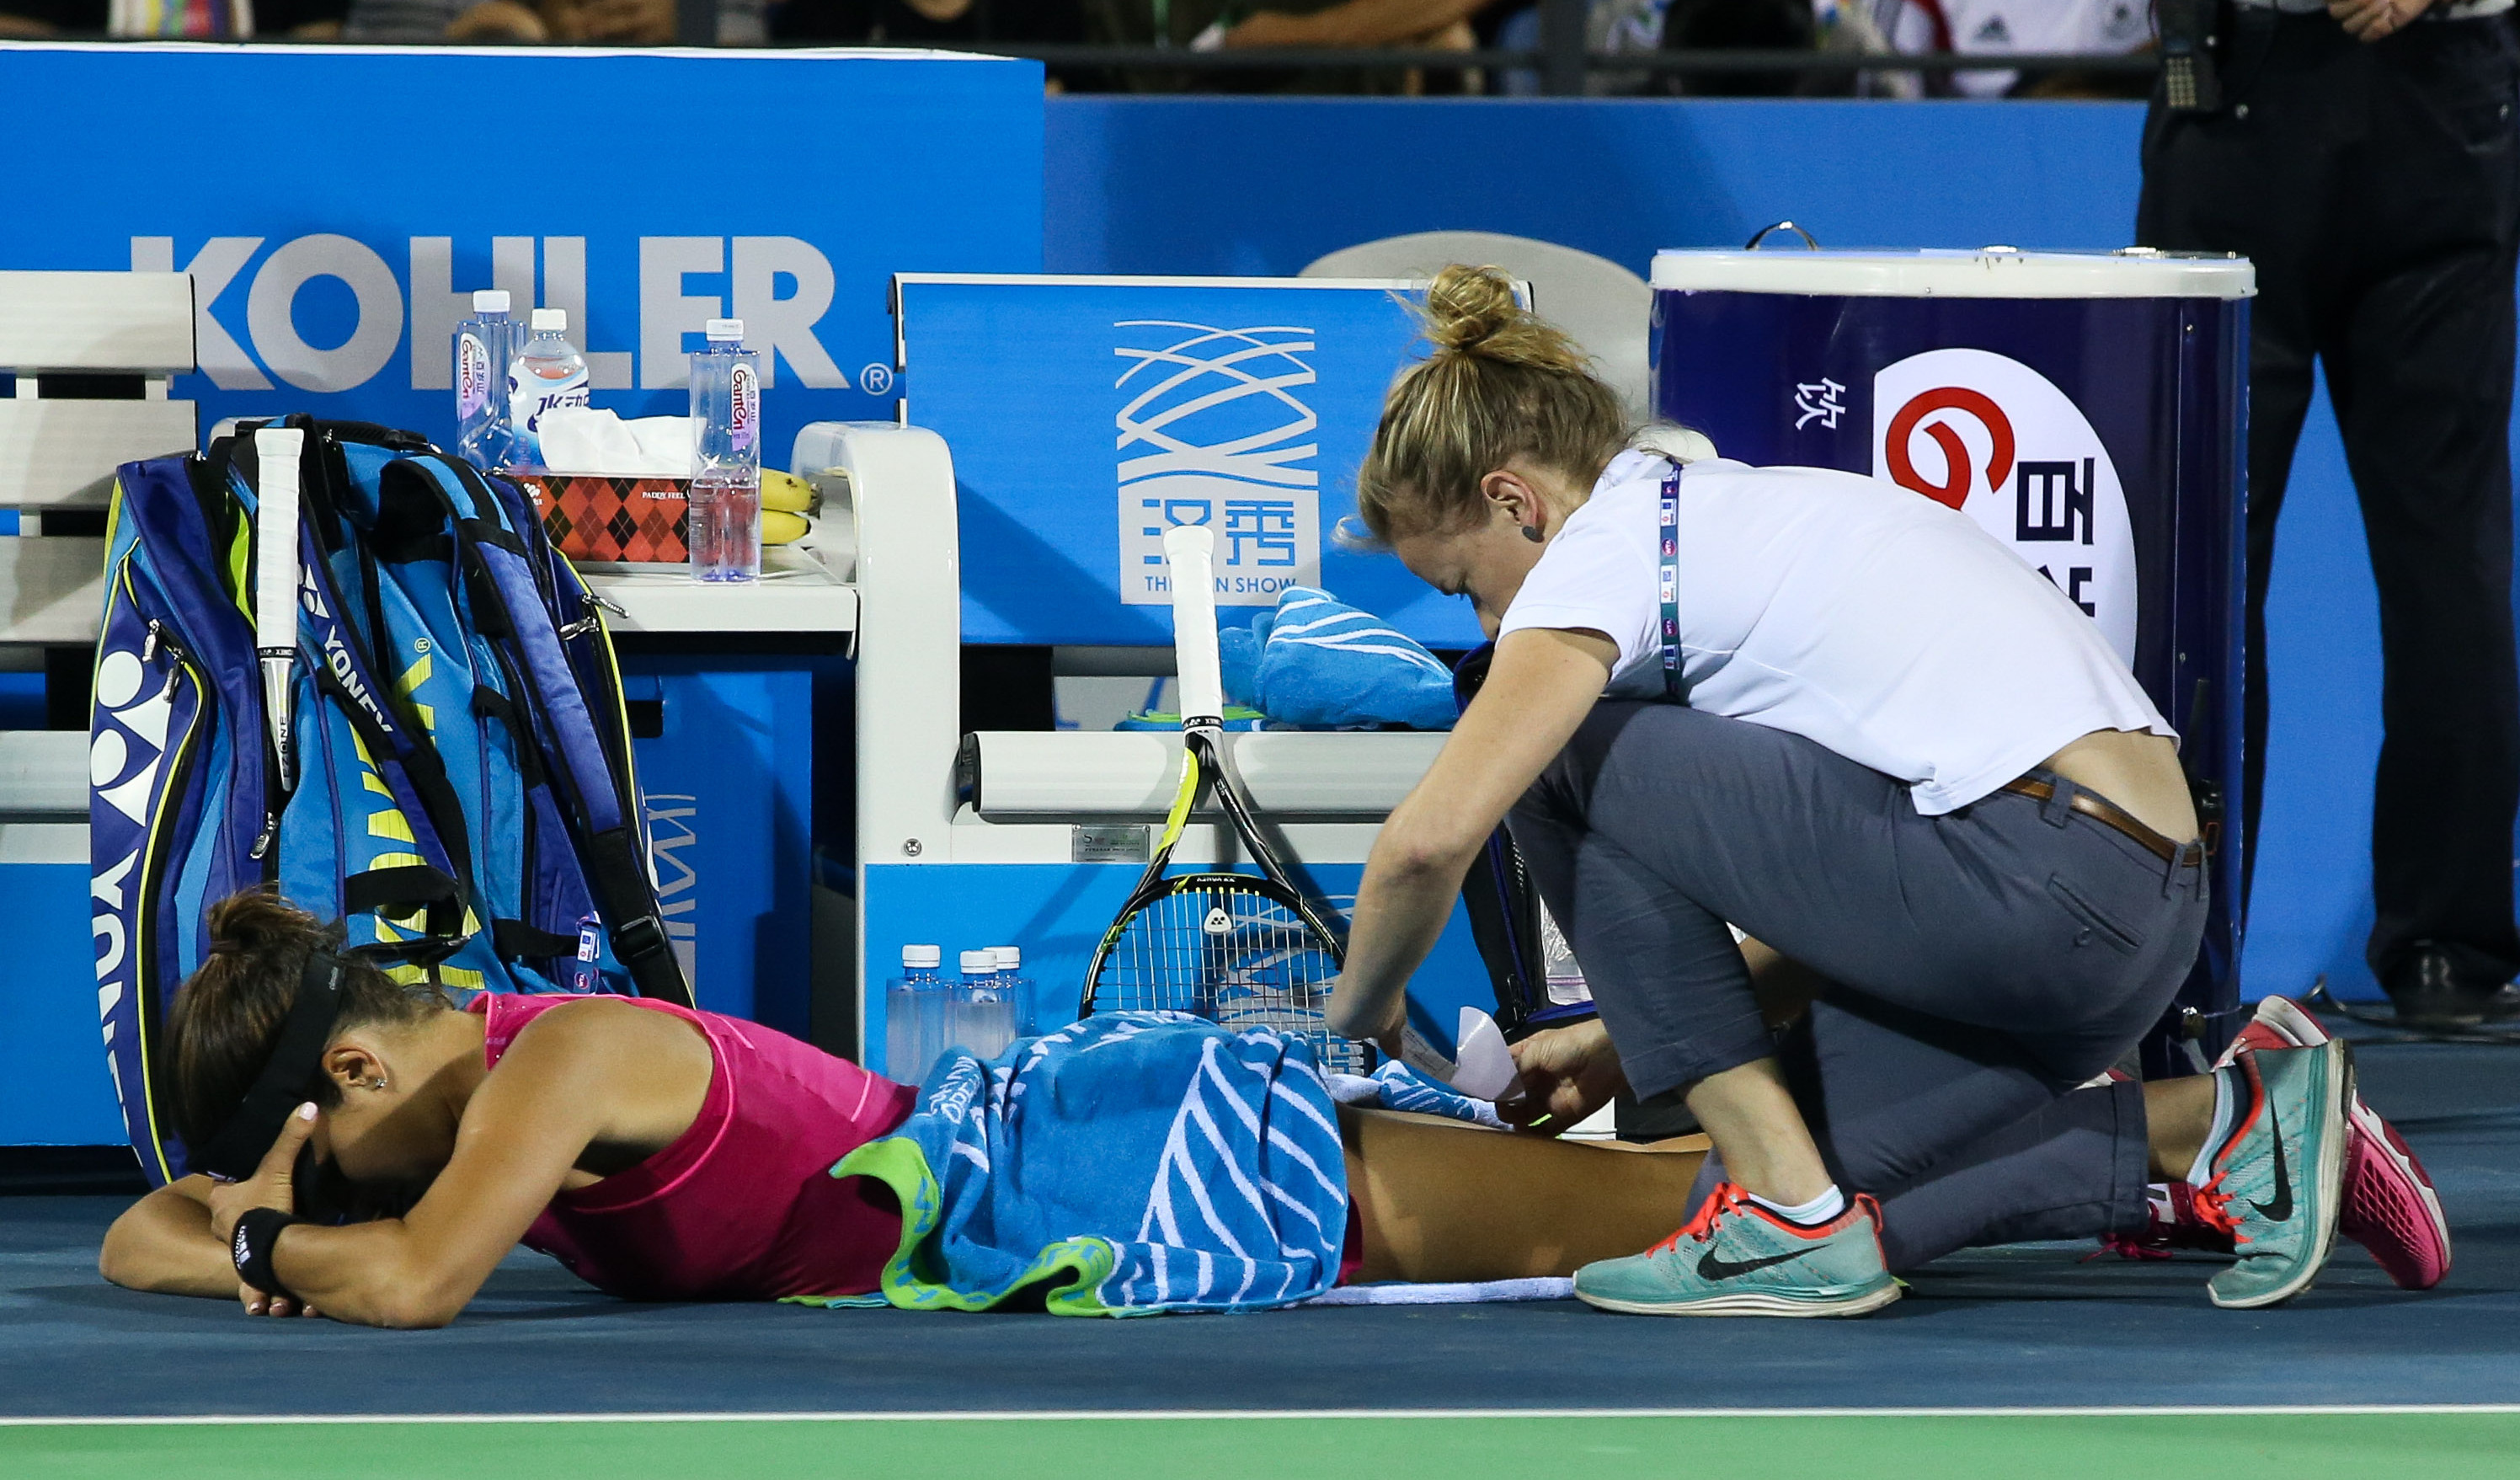 Ivanovic gets treatment on her leg from a trainer.